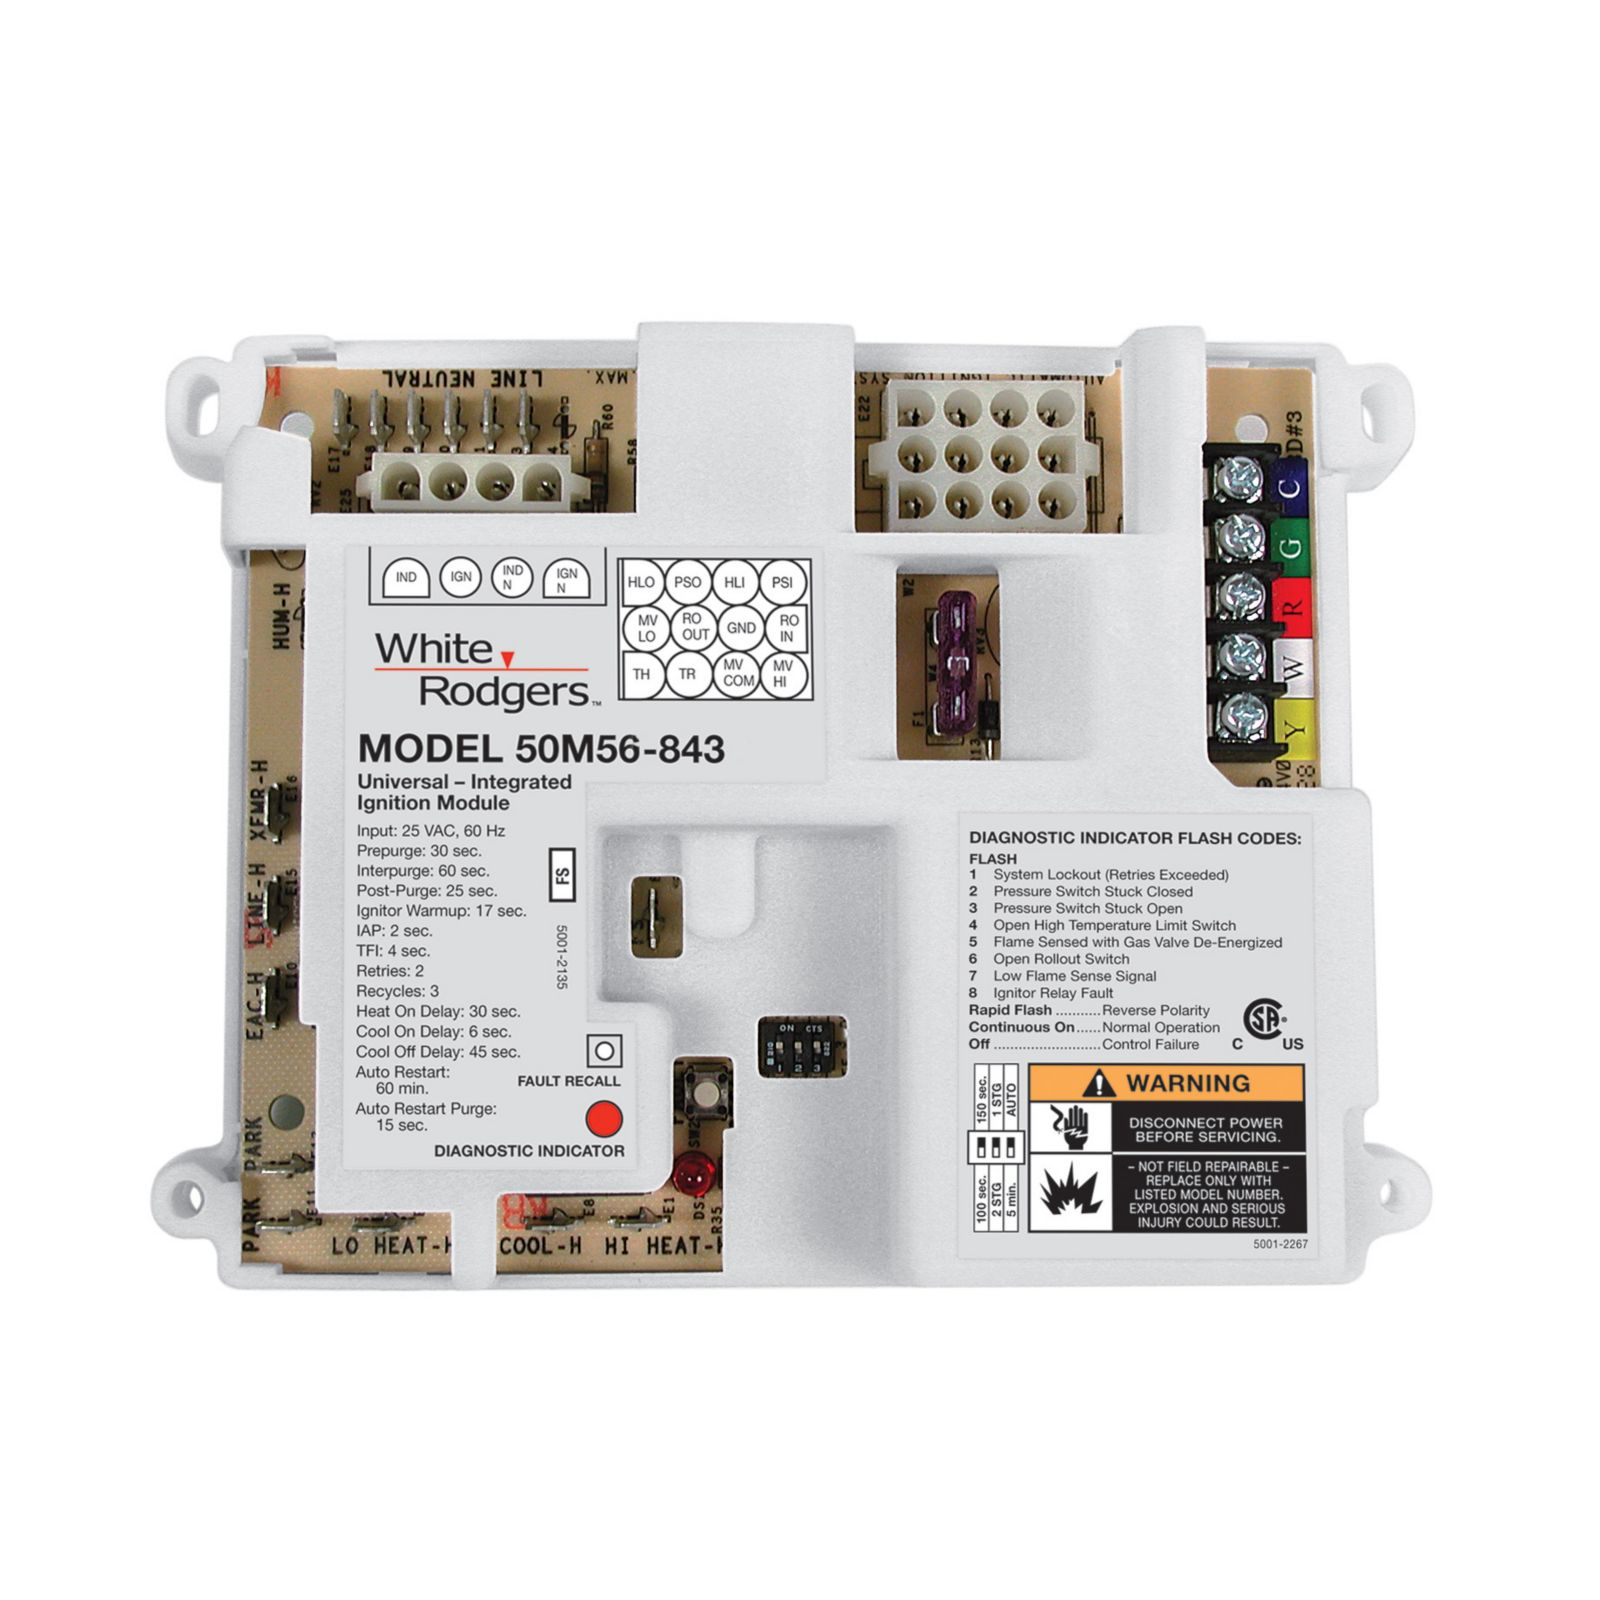 White-Rodgers 50M56U-843 - White-Rogers Universal Single Stage HSI Integrated Furnace Control Kit